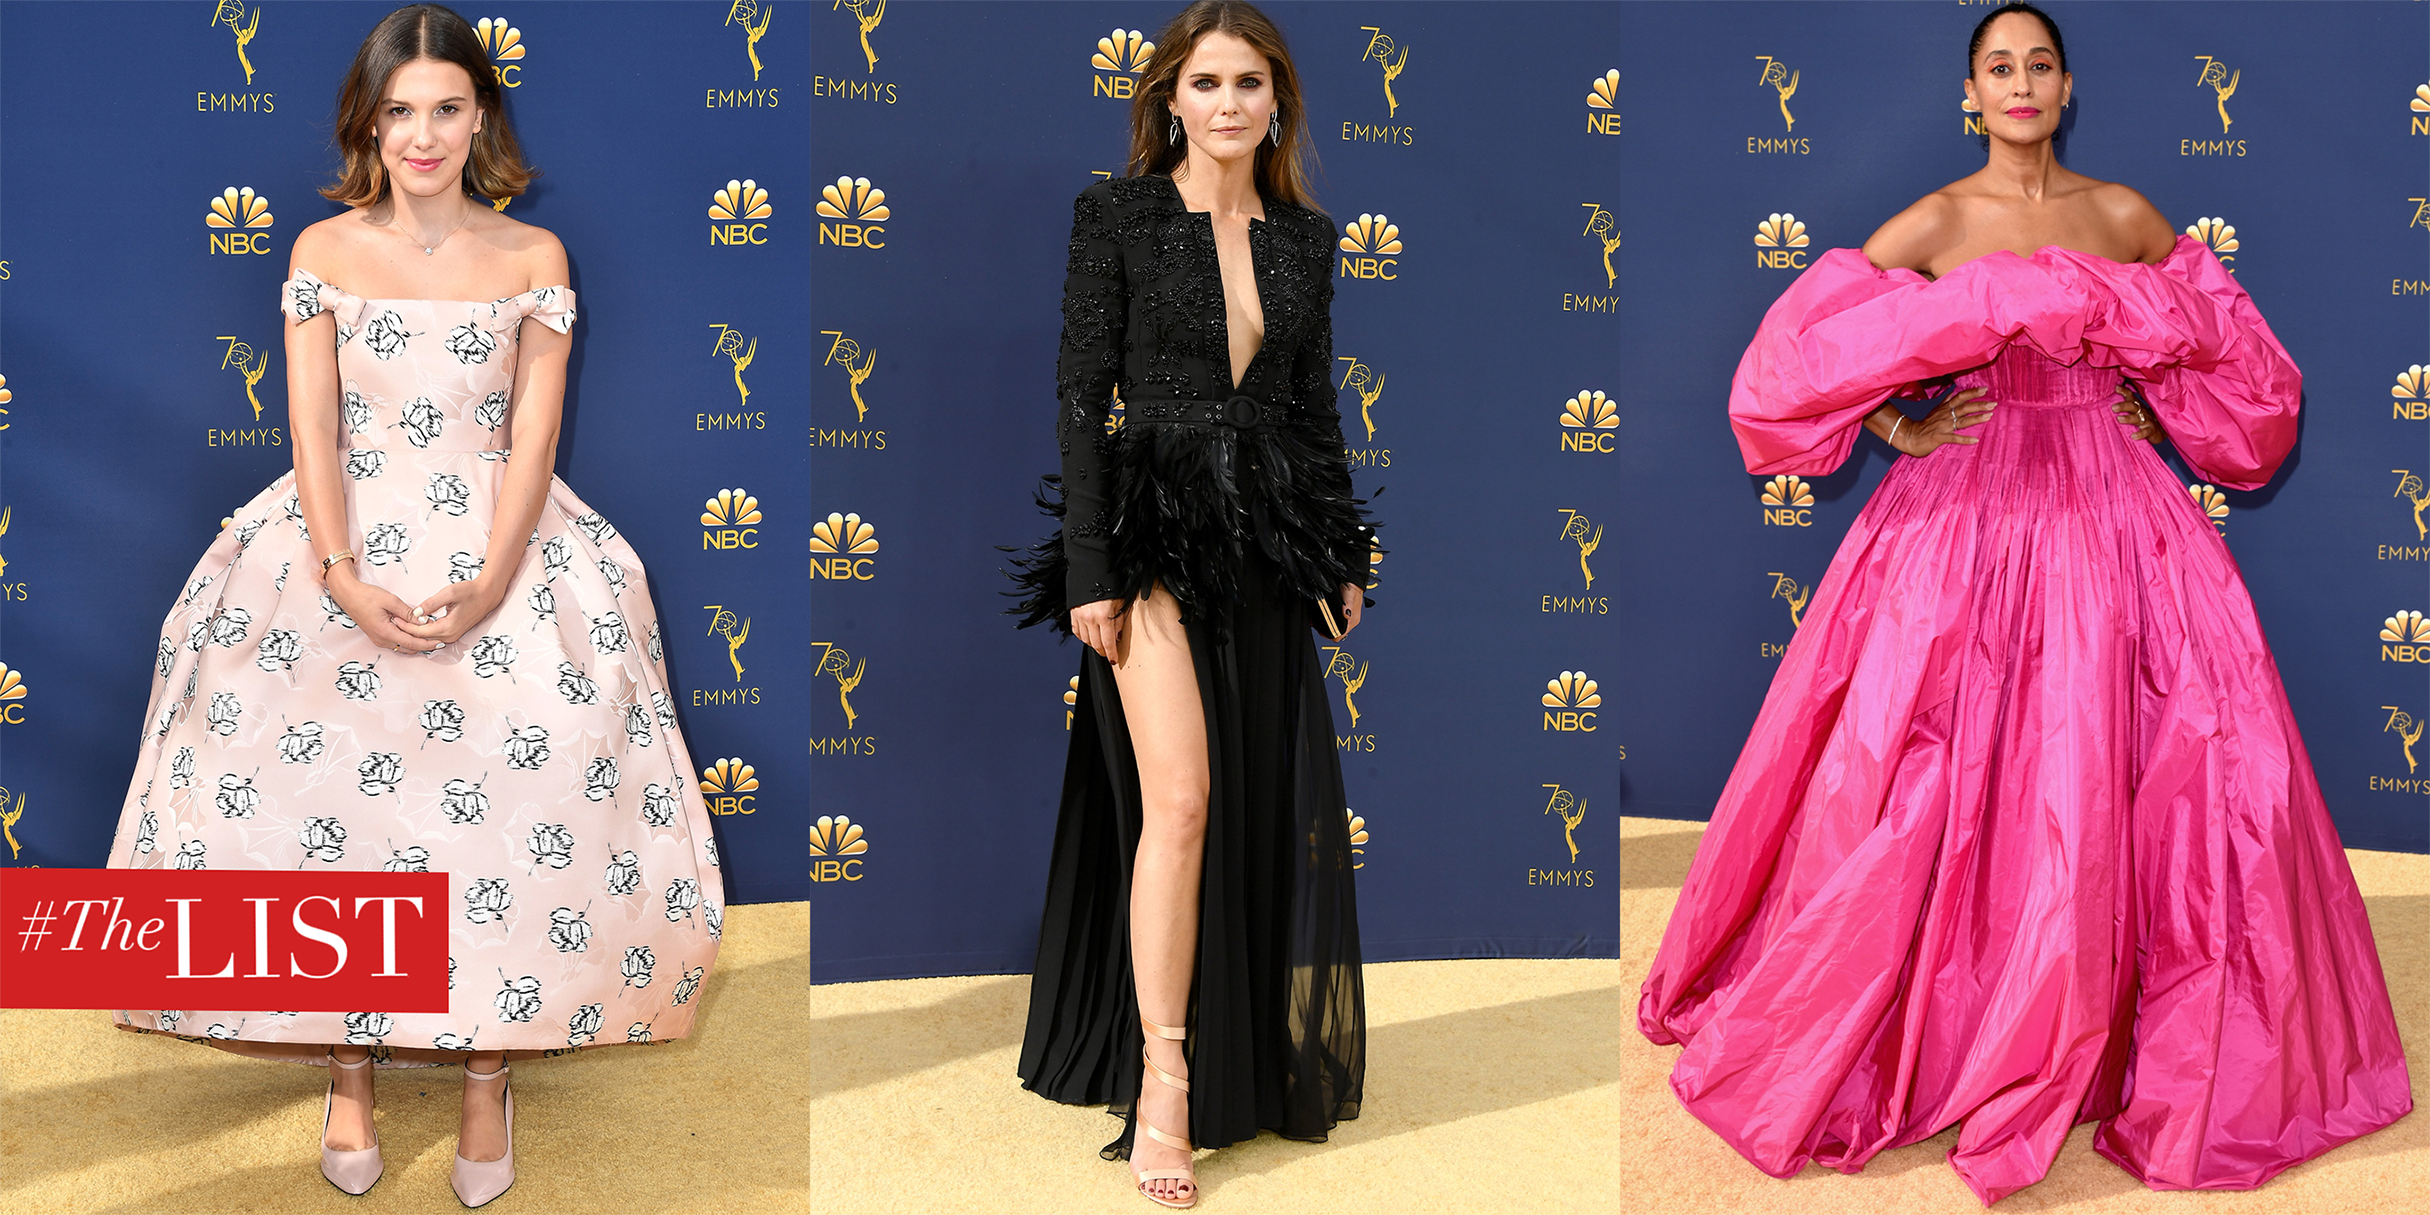 Best Dressed Stars At The 2019 Emmy Awards